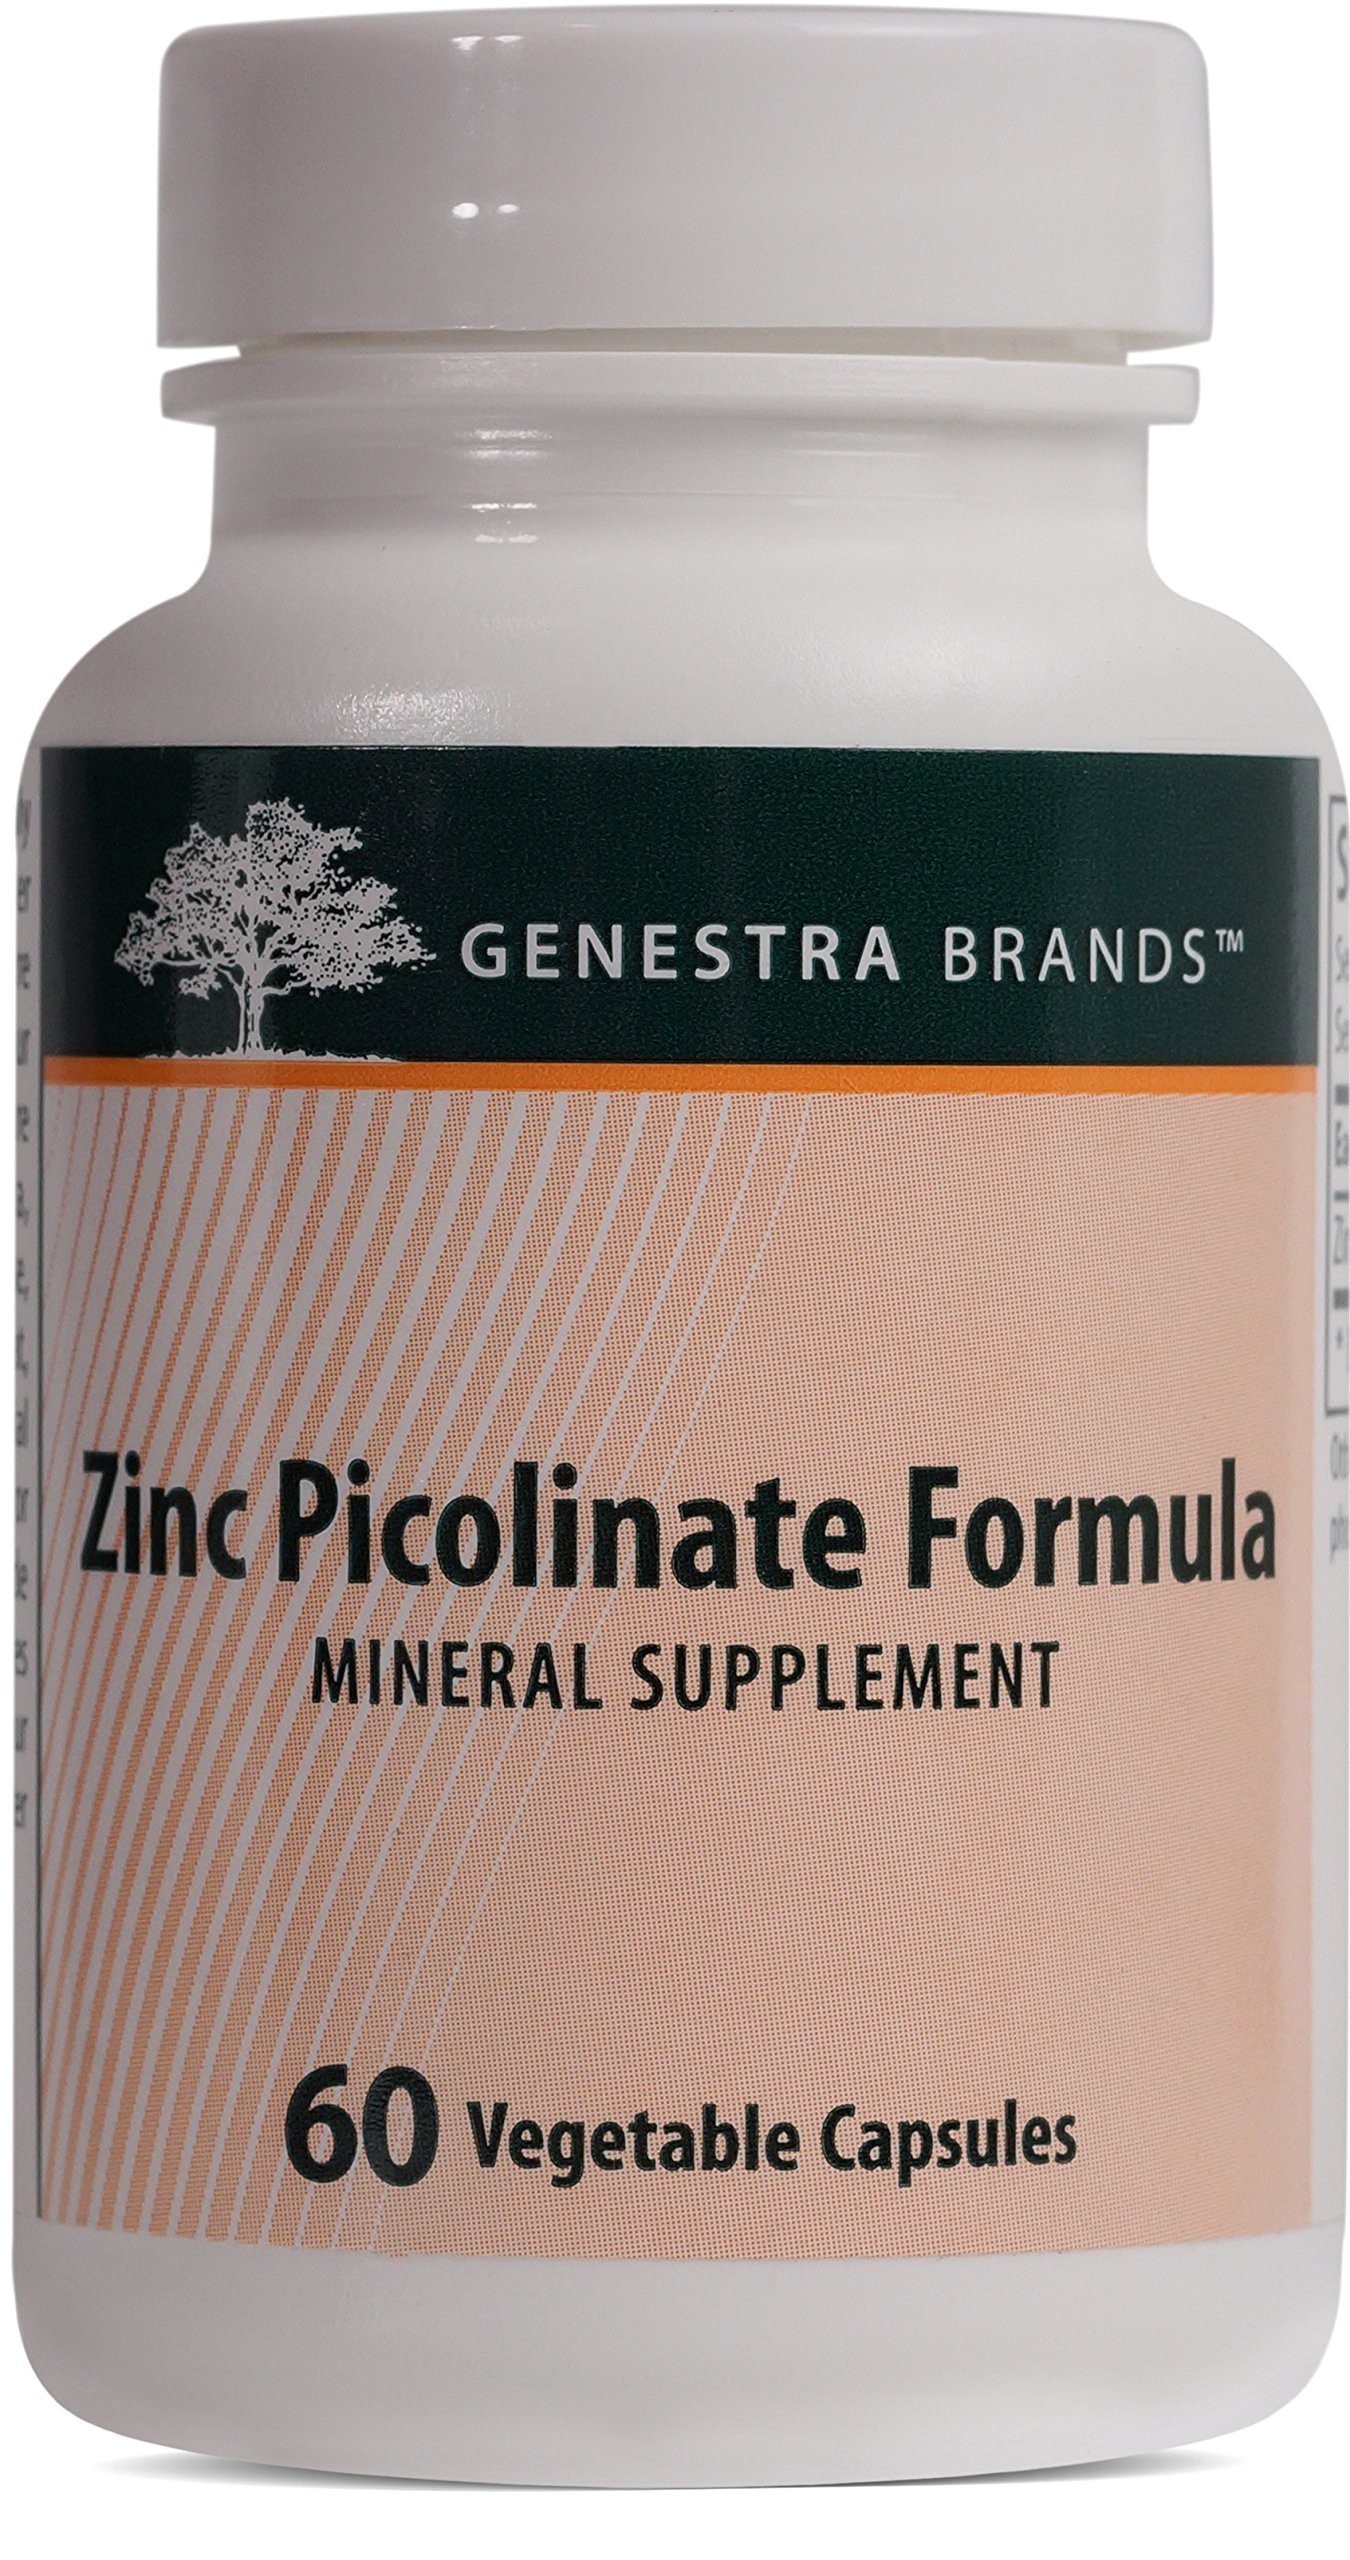 Genestra Brands - Zinc Picolinate Formula - Supports Immunity, Skin, and Connective Tissue Formation* - 60 Vegetable Capsules